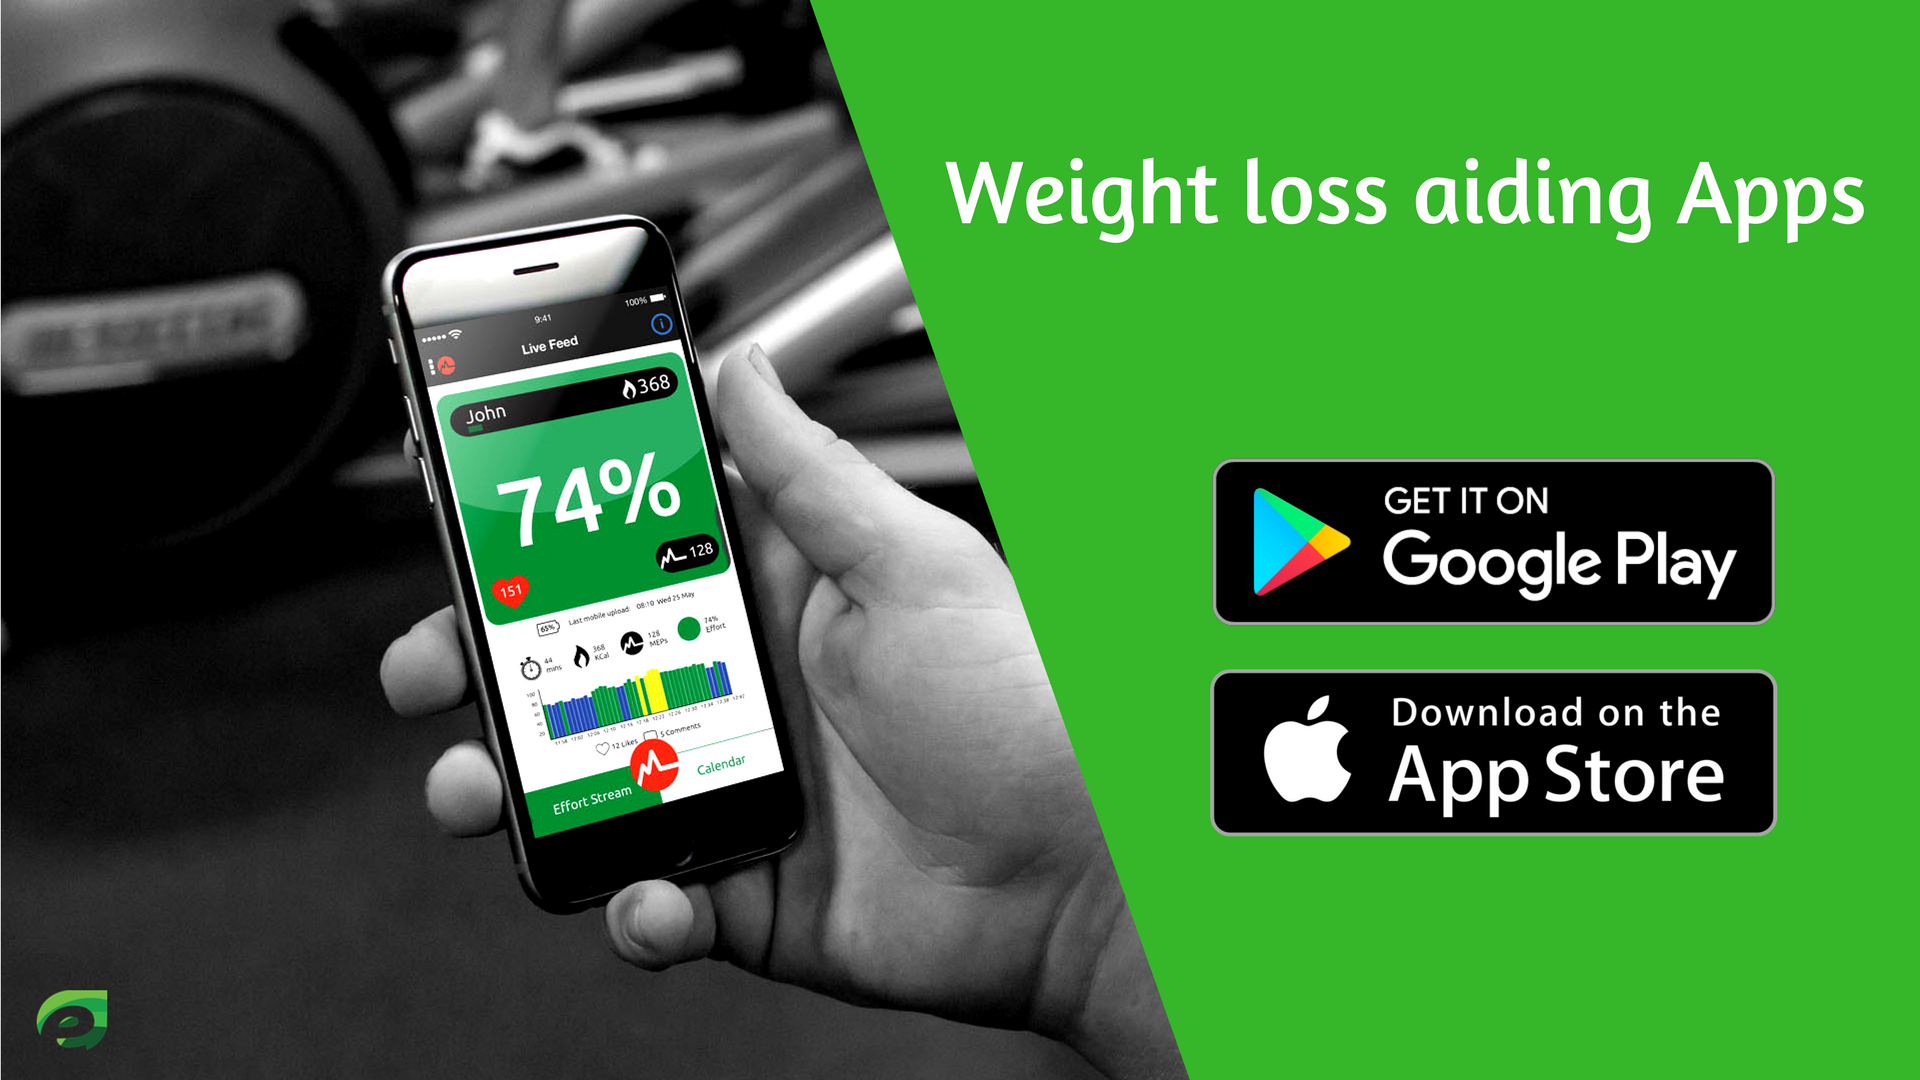 Weight loosing Apps - Loss Weight using Phone